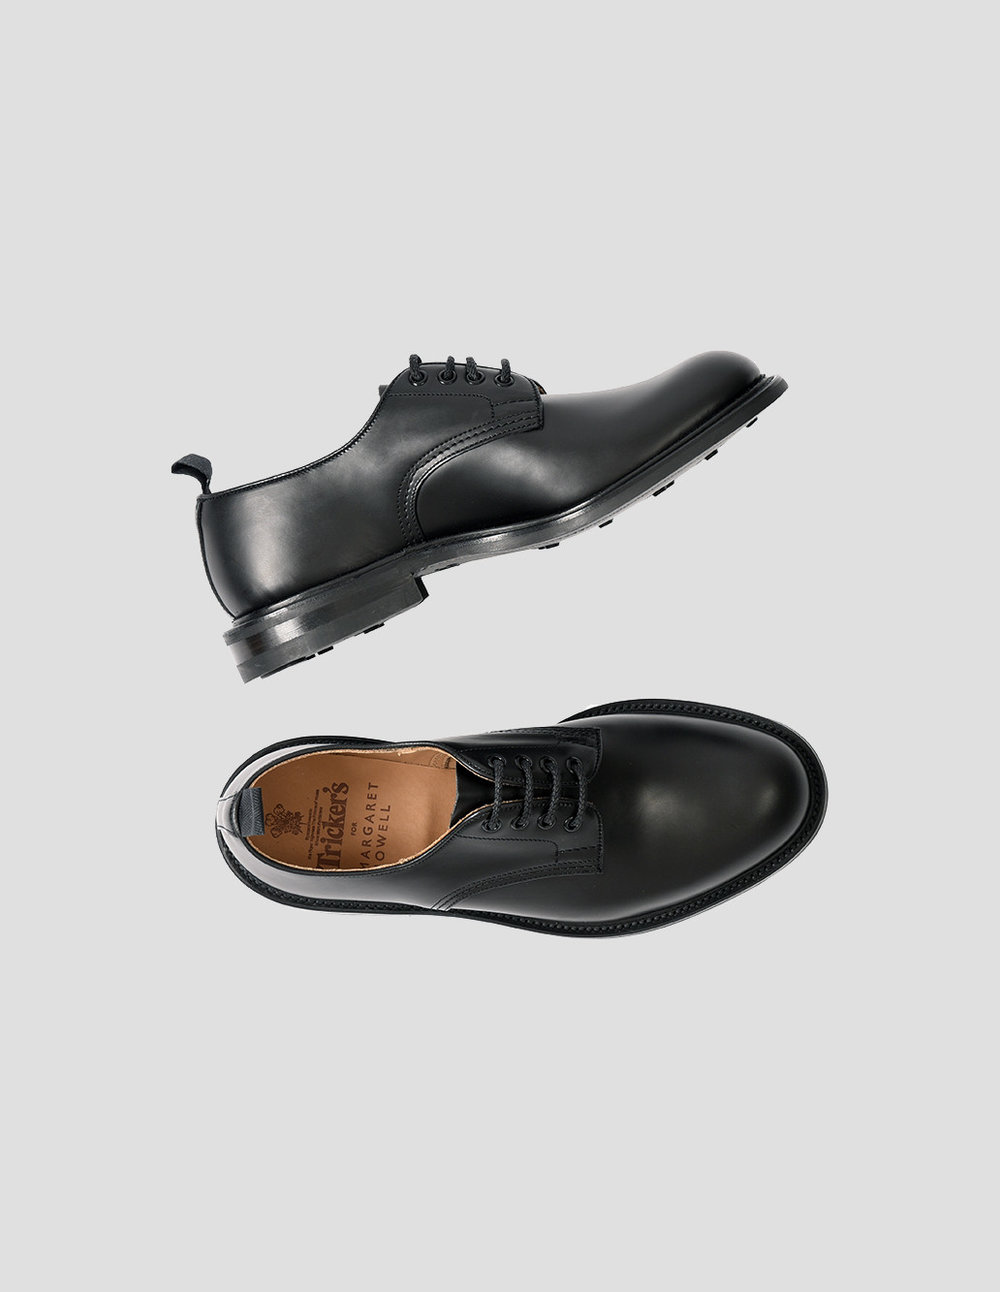 margaret-howell-men-ss18-soft-derby-shoe-bookbinder-leather-black.jpg